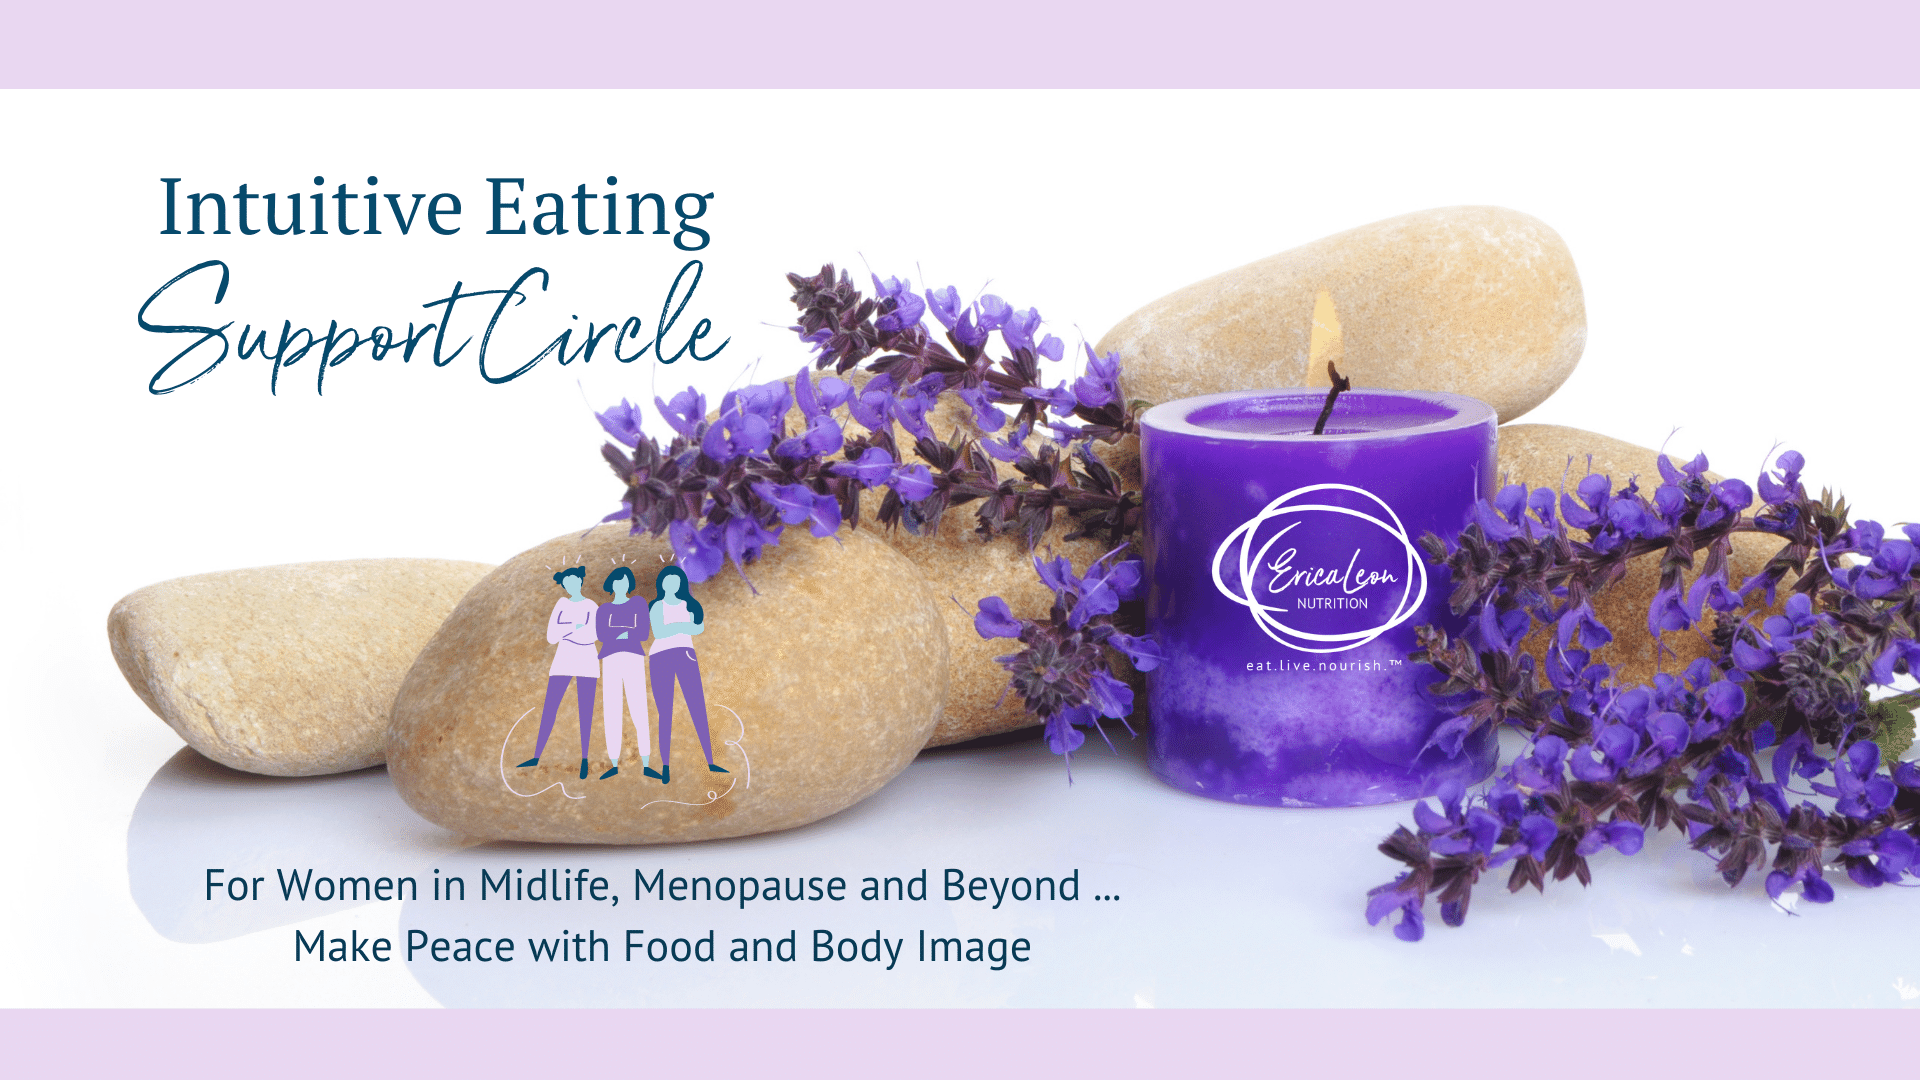 Intuitive Eating Support Circle with Erica Leon